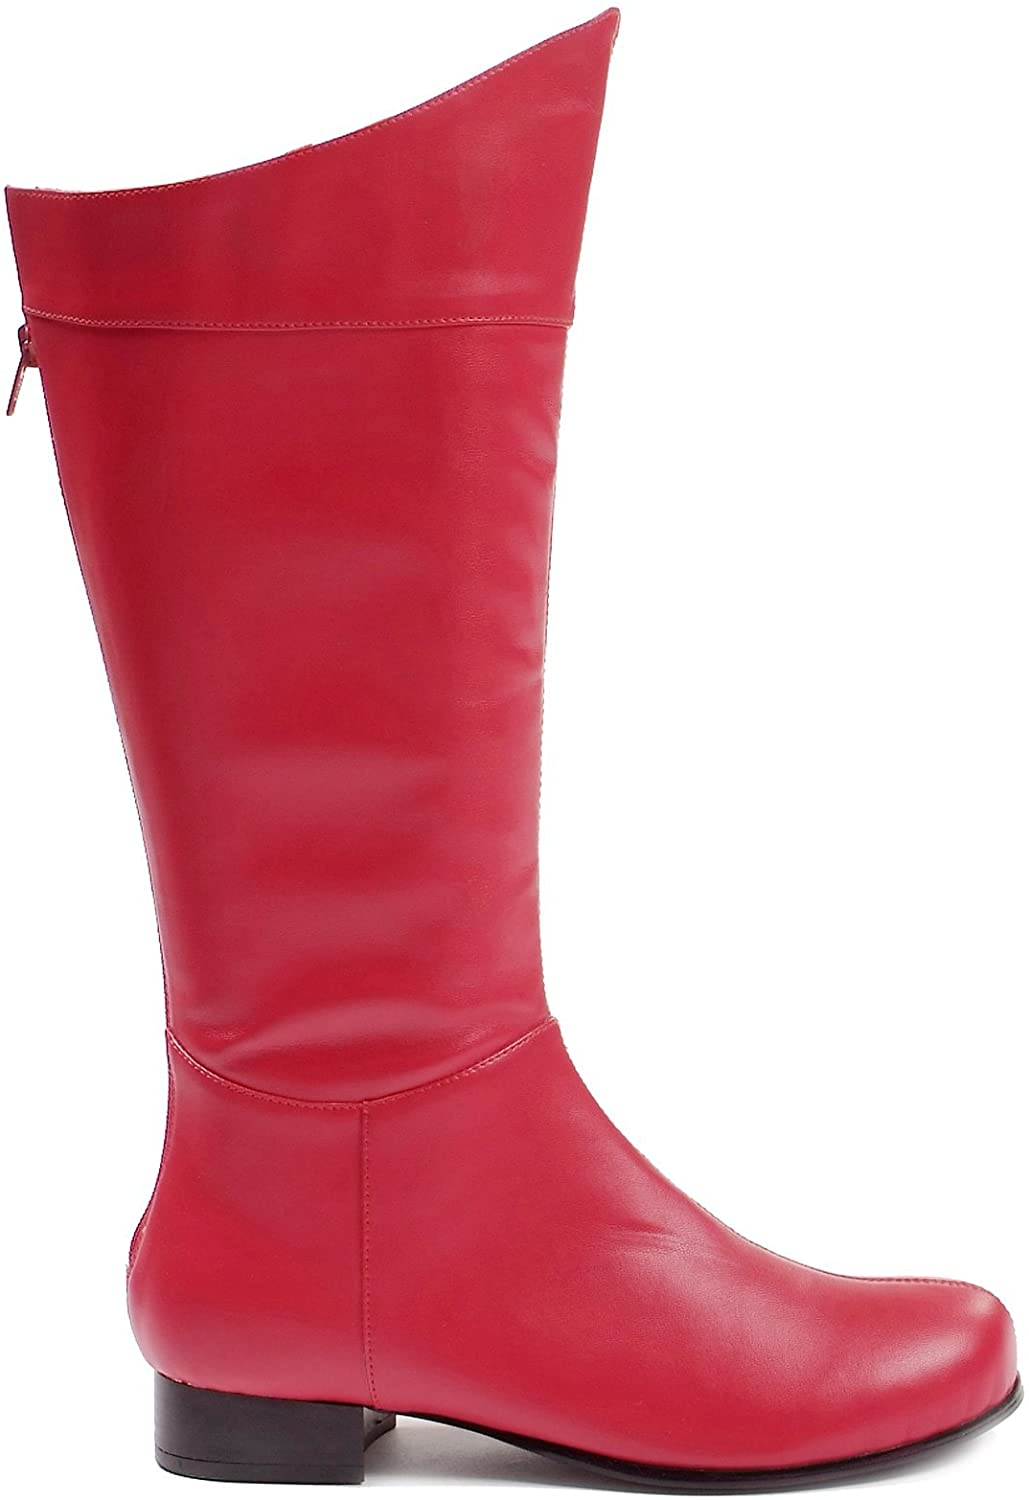 Ellie Shoes Adult Red Super Hero Boots